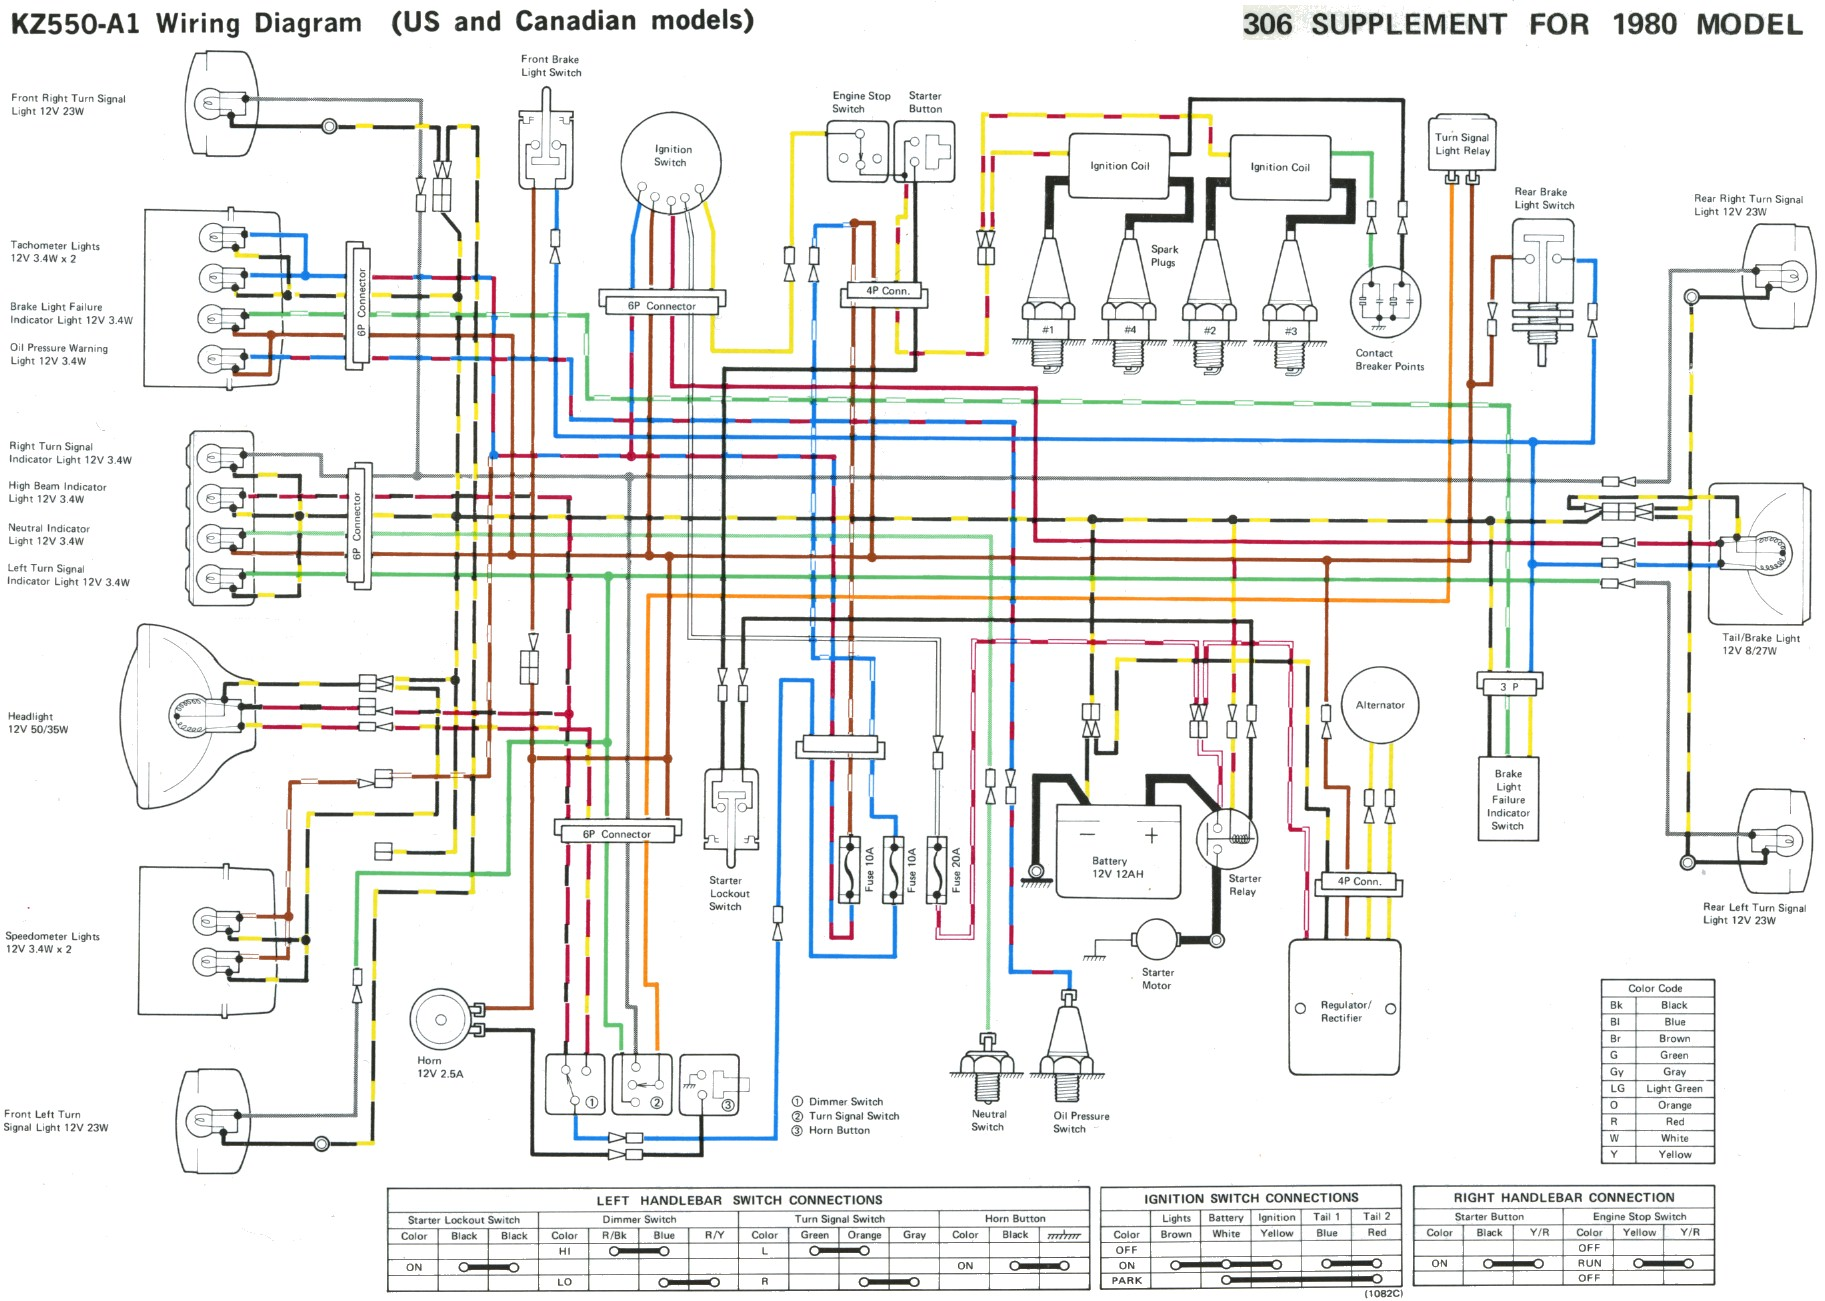 Surprising Kz550 Wiring Diagram Wiring Diagram Data Schema Wiring 101 Orsalhahutechinfo